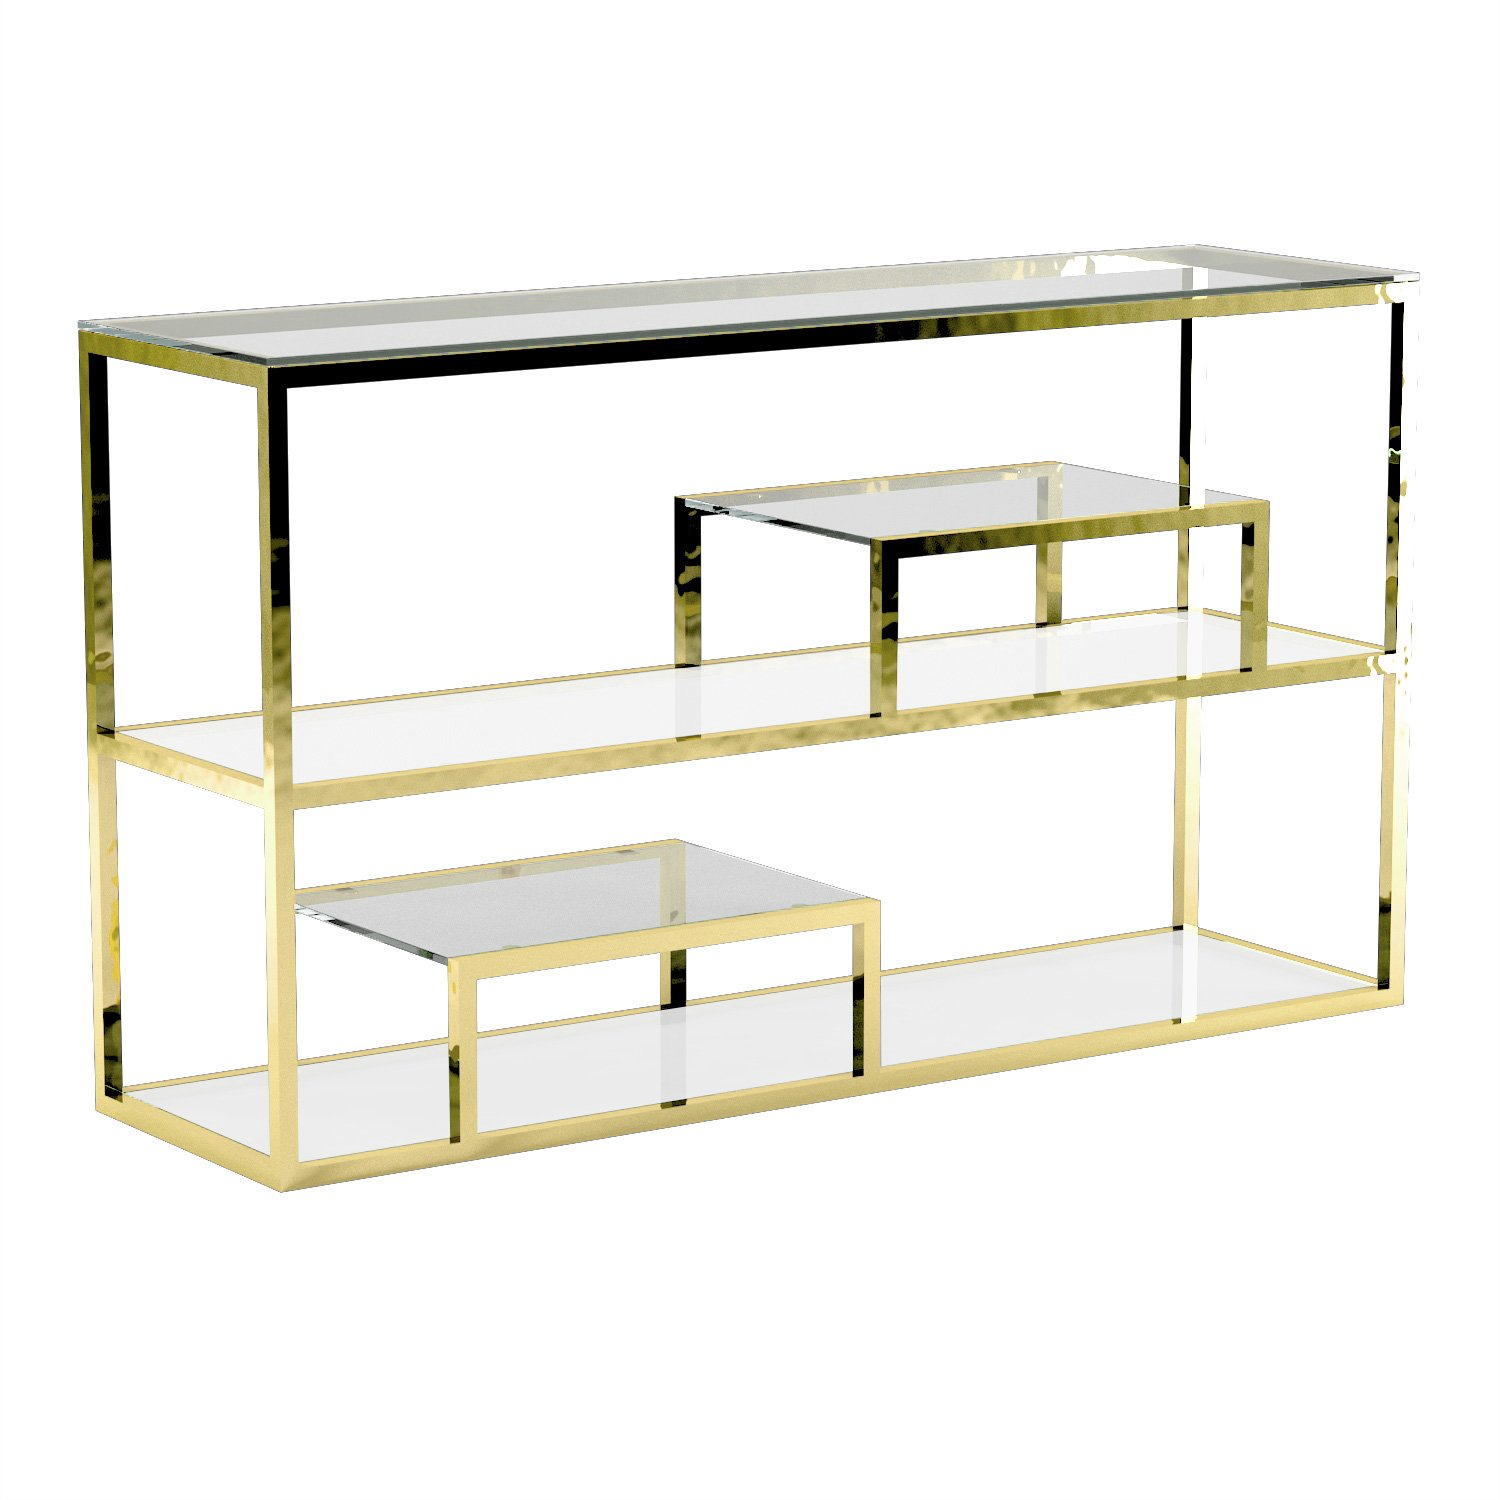 Uptown Club Gael Collection Modern Console Table With Three Tier Shelves and Tempered Glass Finish Gold by Uptown Club